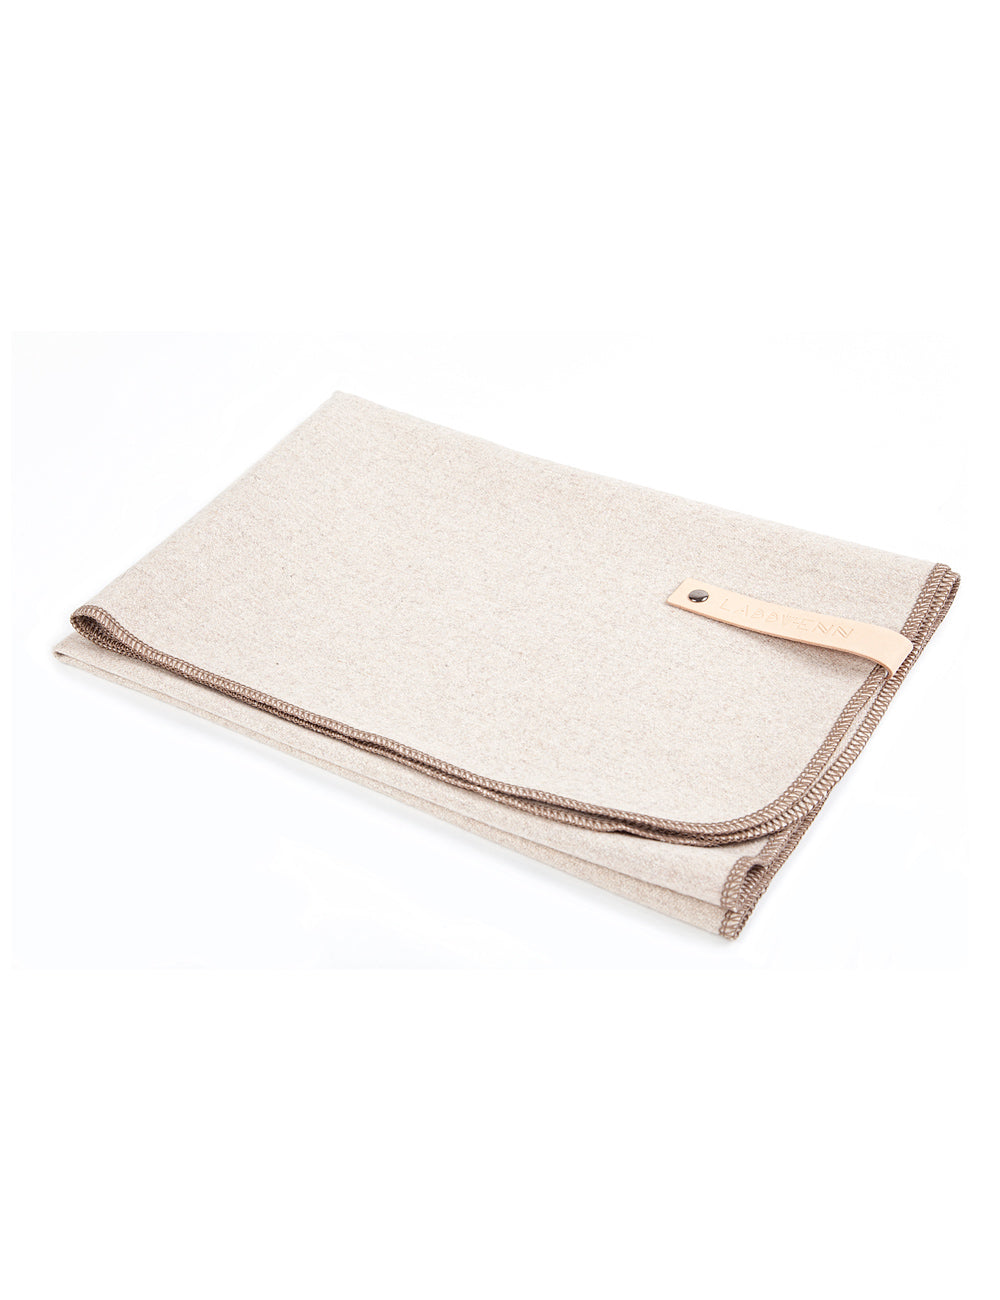 Asnen Blanket | Light Brown